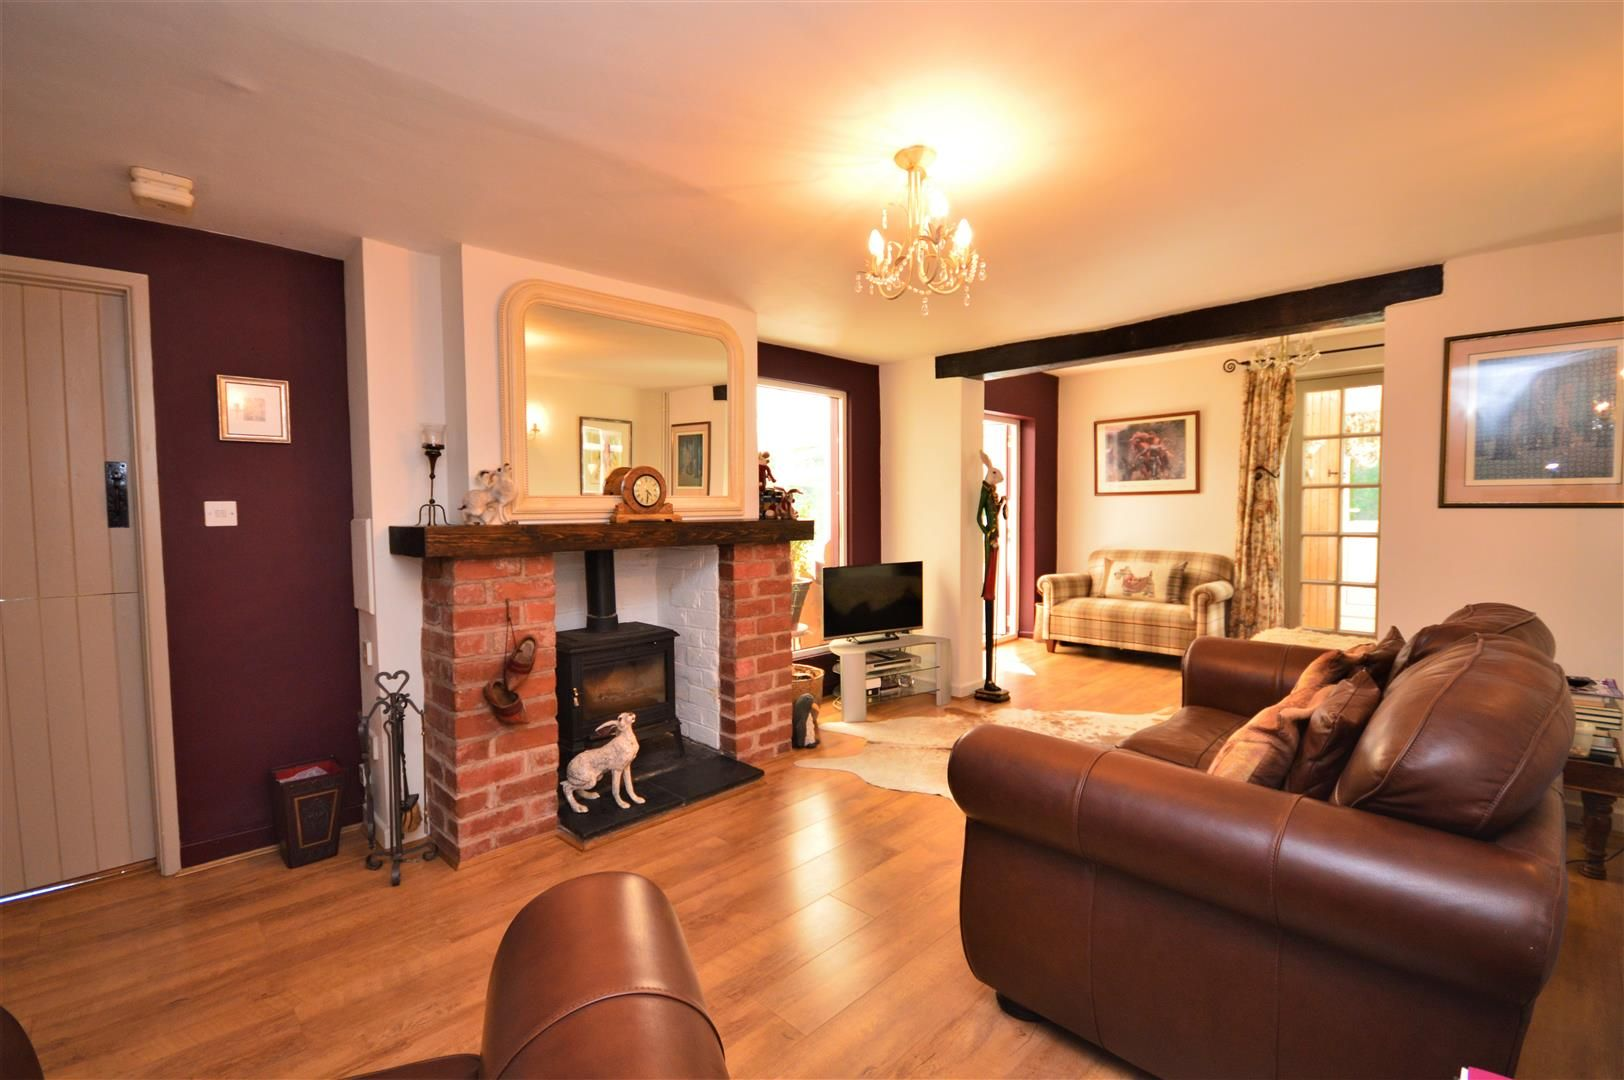 3 bed semi-detached for sale in Stretton Sugwas  - Property Image 5